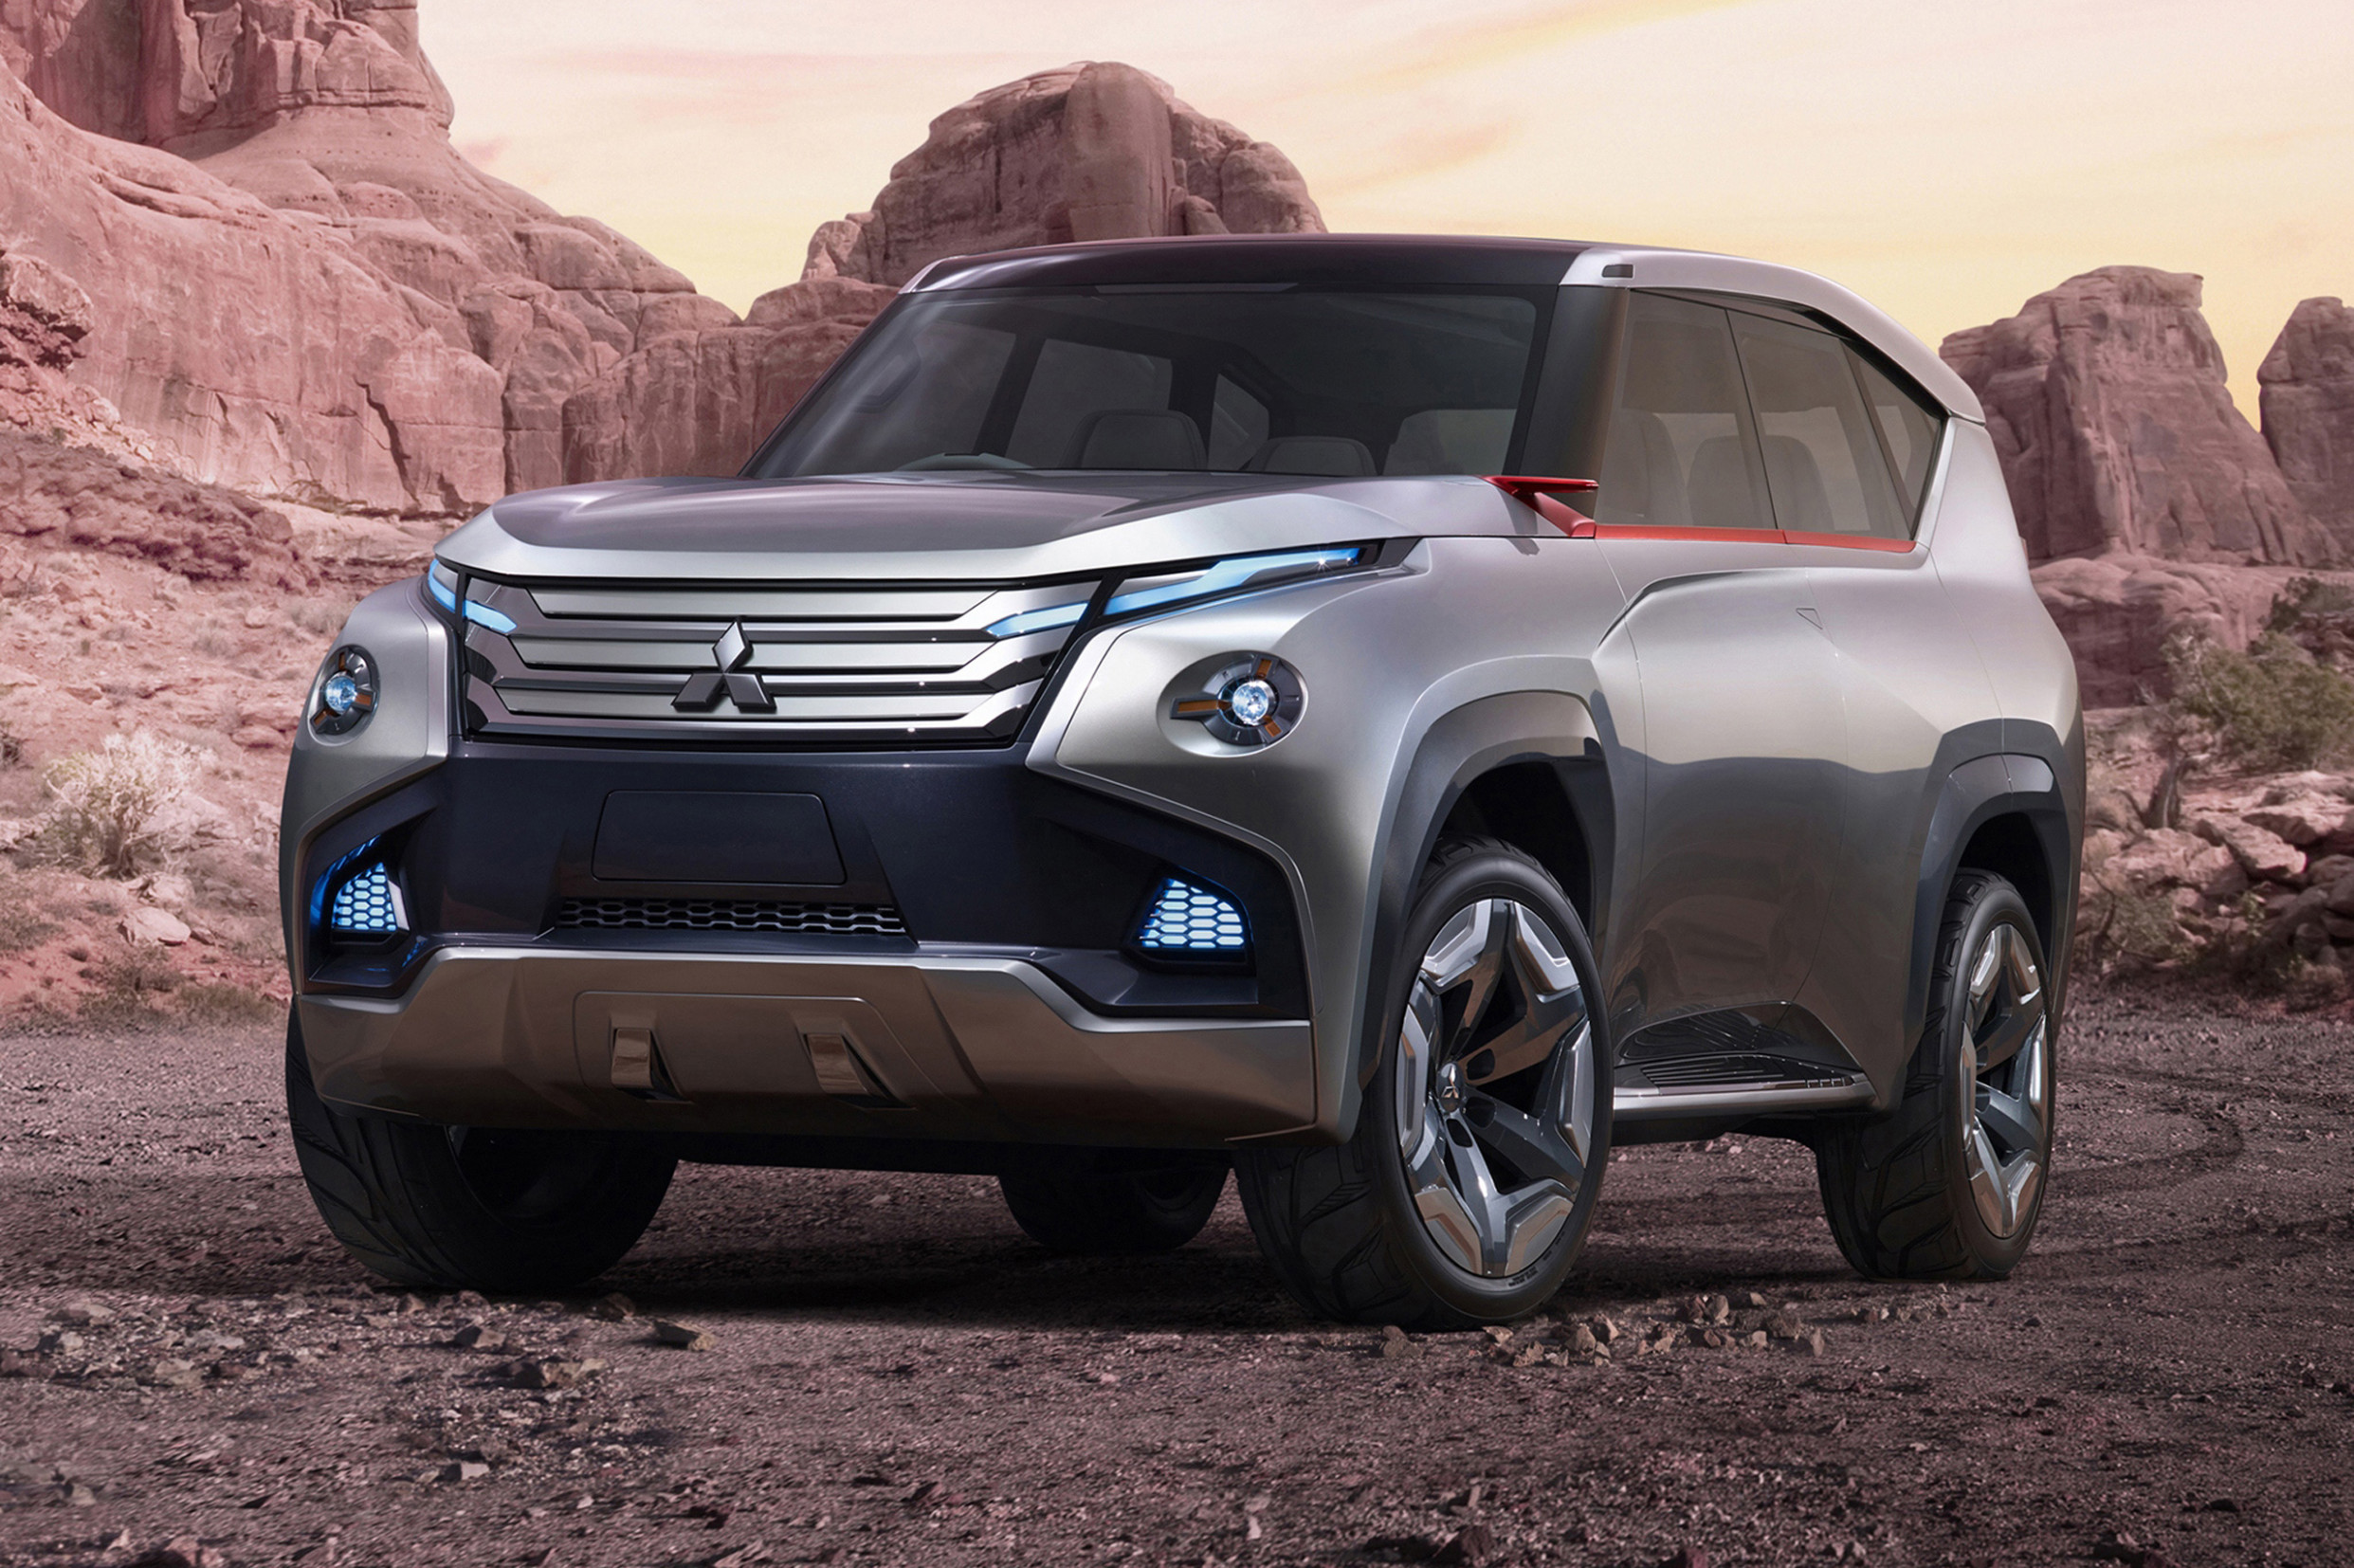 Concept and Review 2022 All Mitsubishi Pajero